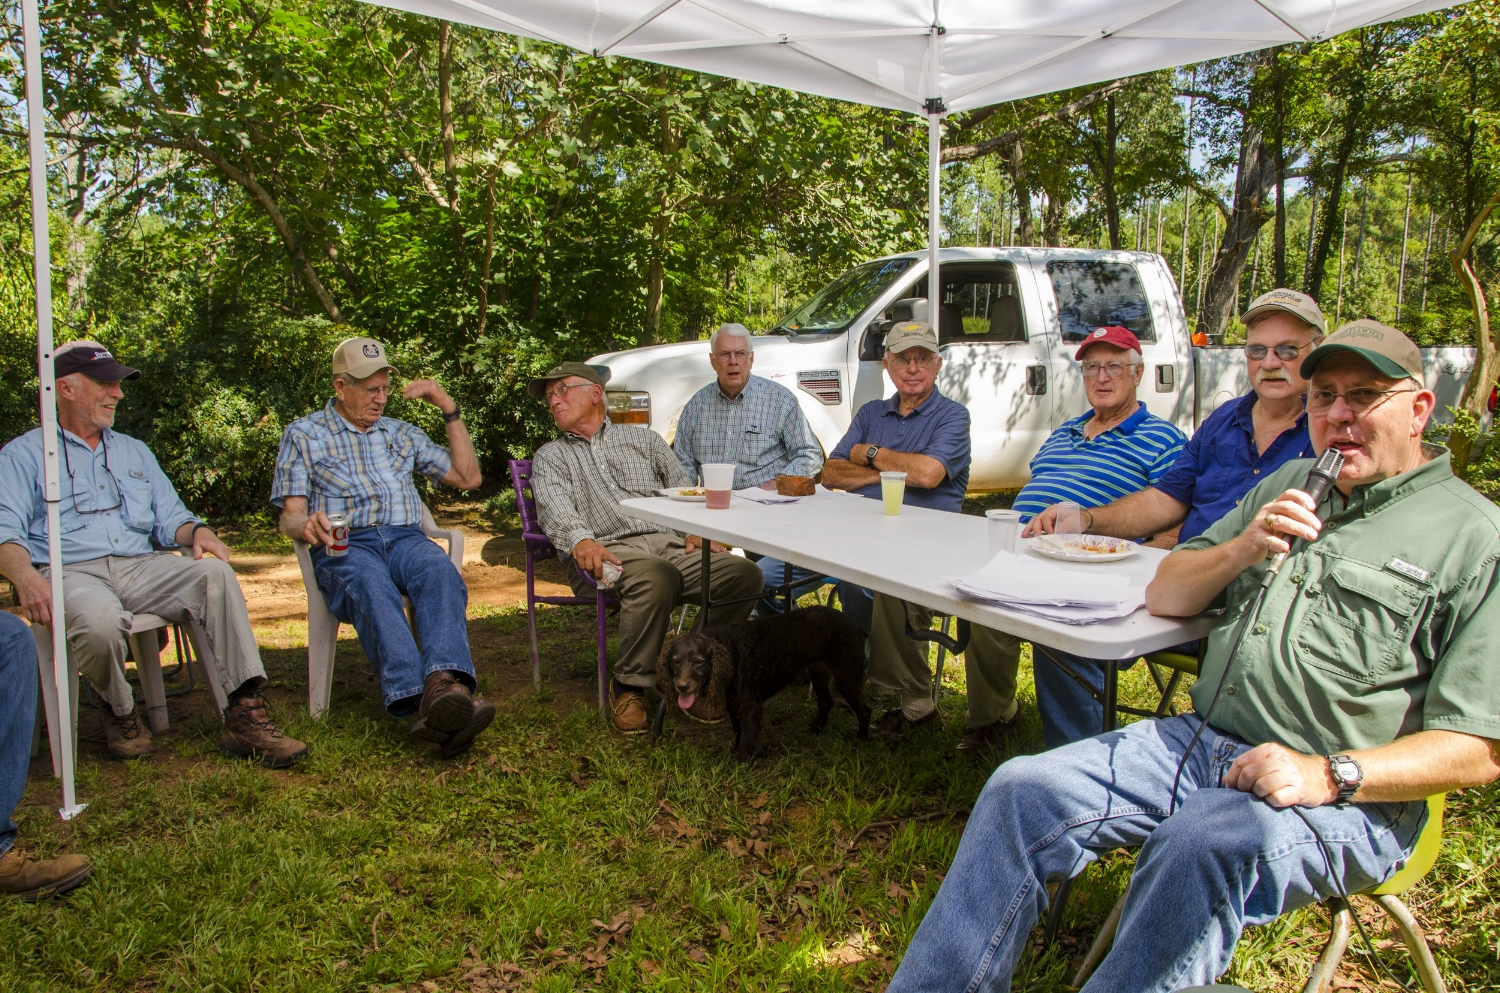 A panel of some of South Carolina's top field trial competitors told stories and took questions from an eager audience at the ASCFTC's 2nd annual Bird Dog Revival.